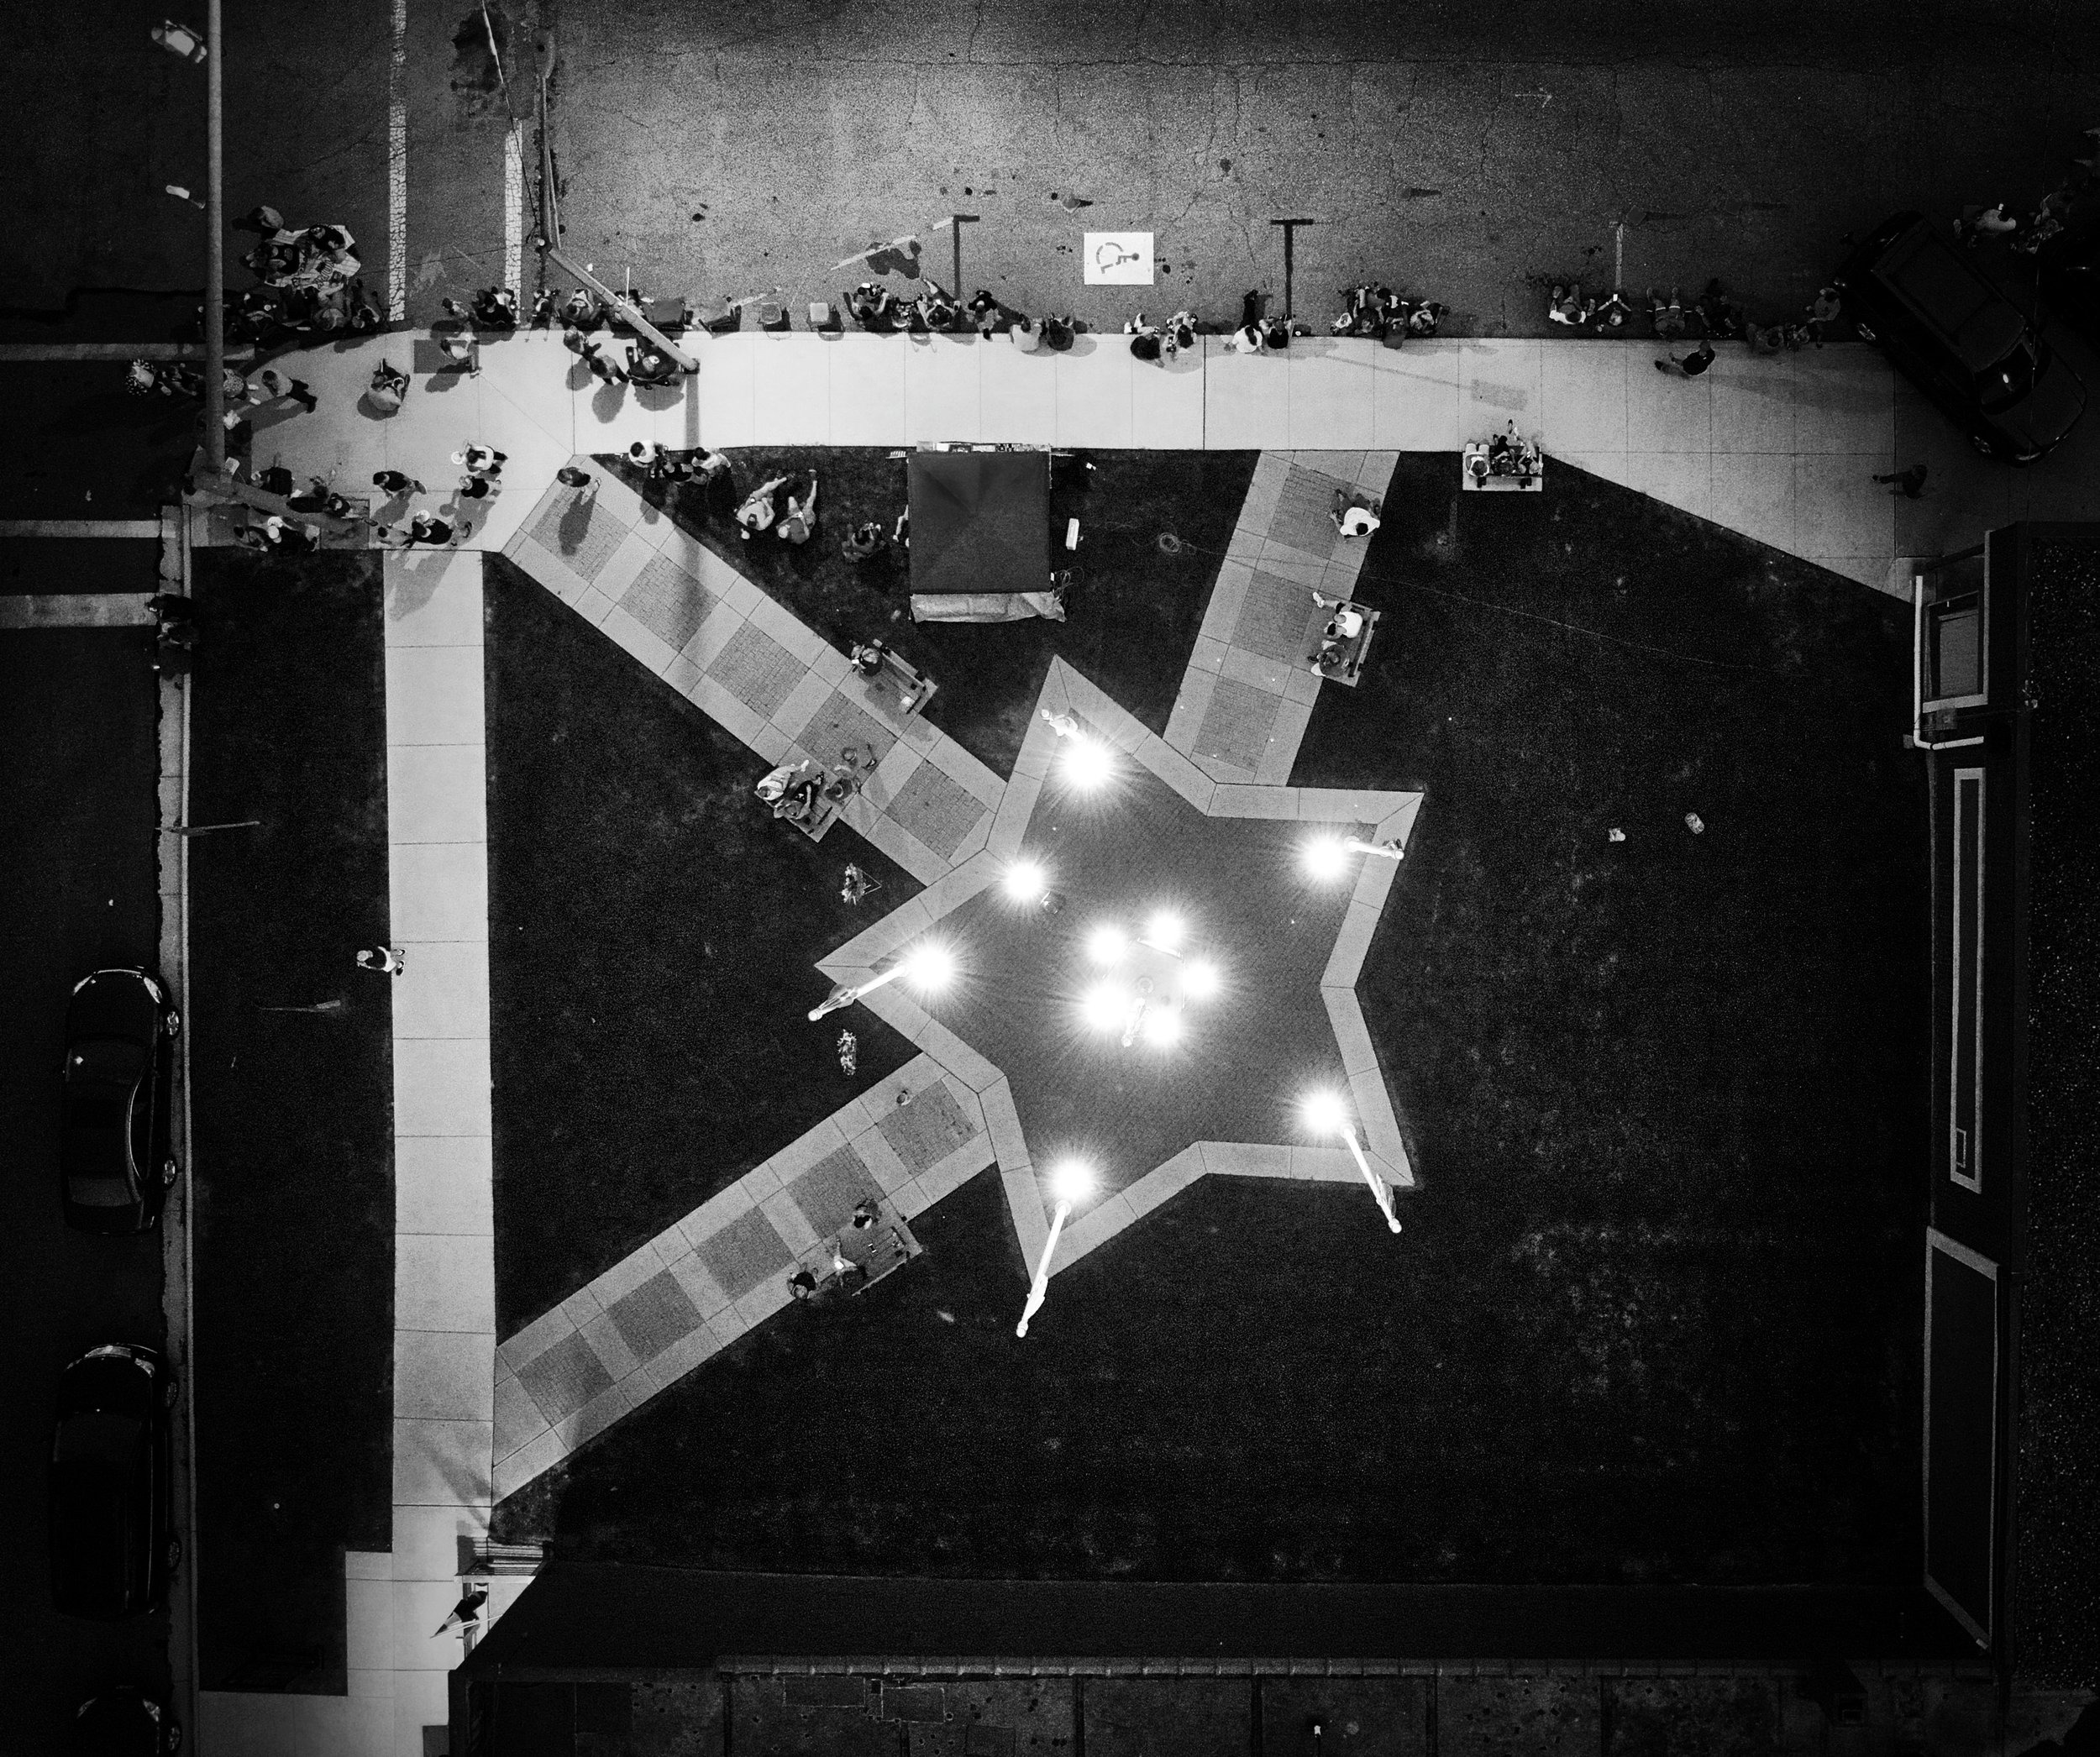 Jackson is a beautiful city from which to take aerial photos, a perfect example of the treasure waiting to be found in our own backyards. I especially love this shot of the Jackson War Memorial, it feels extra special when viewed from the eye of the heavens.